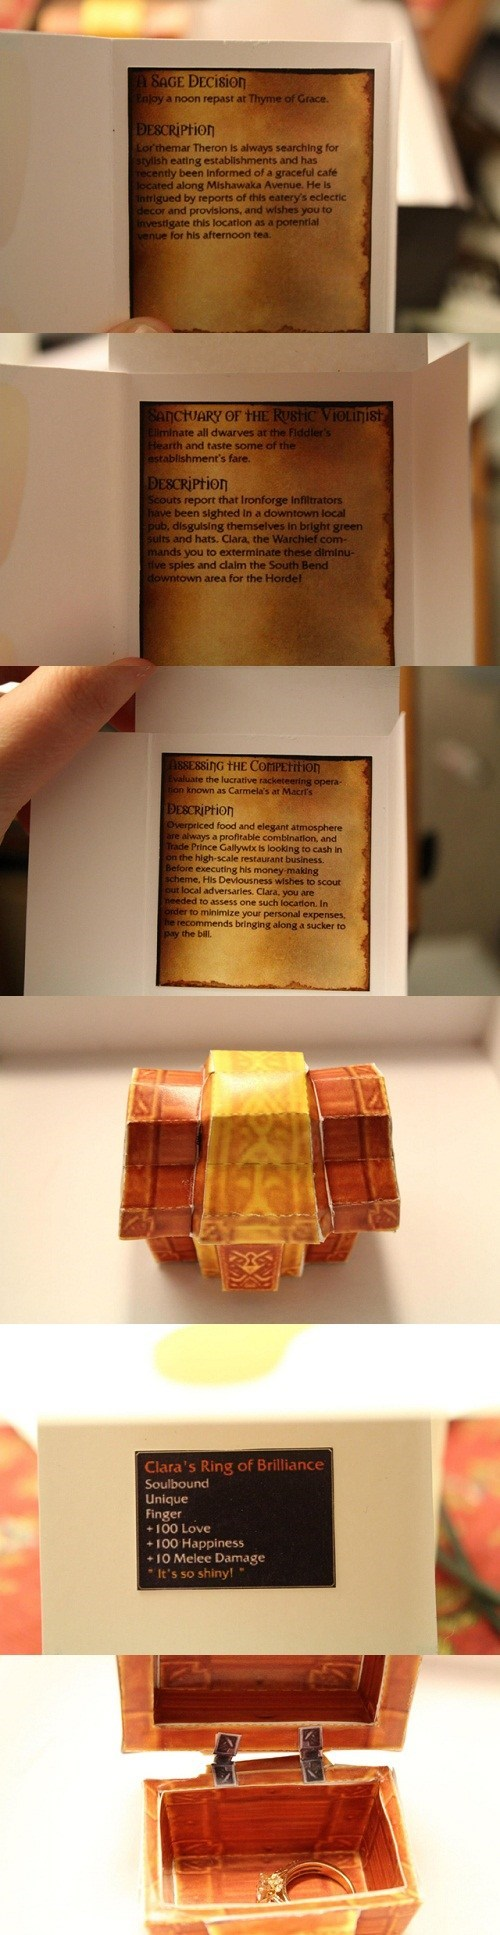 world of warcraft,IRL,quests,couples,engagement,video games,marriages